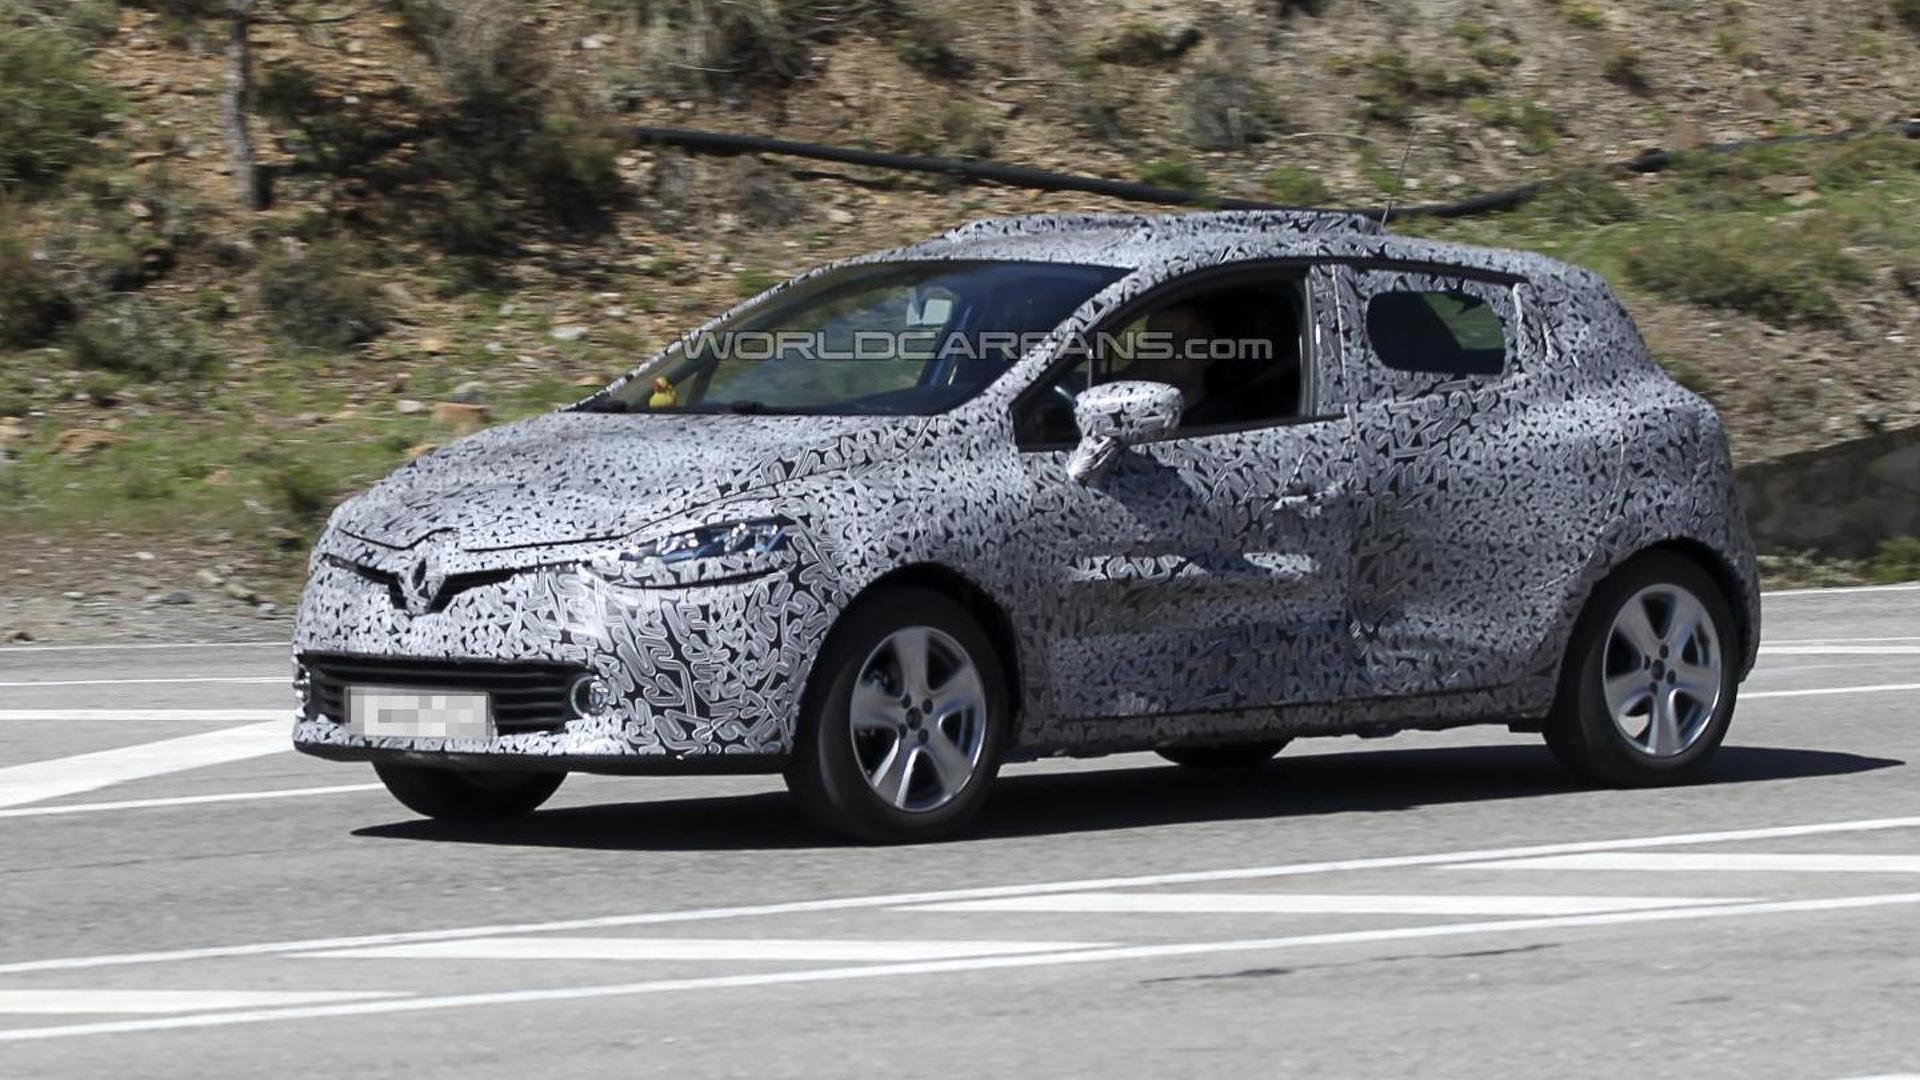 2013/2014 Renault Clio Spied testing